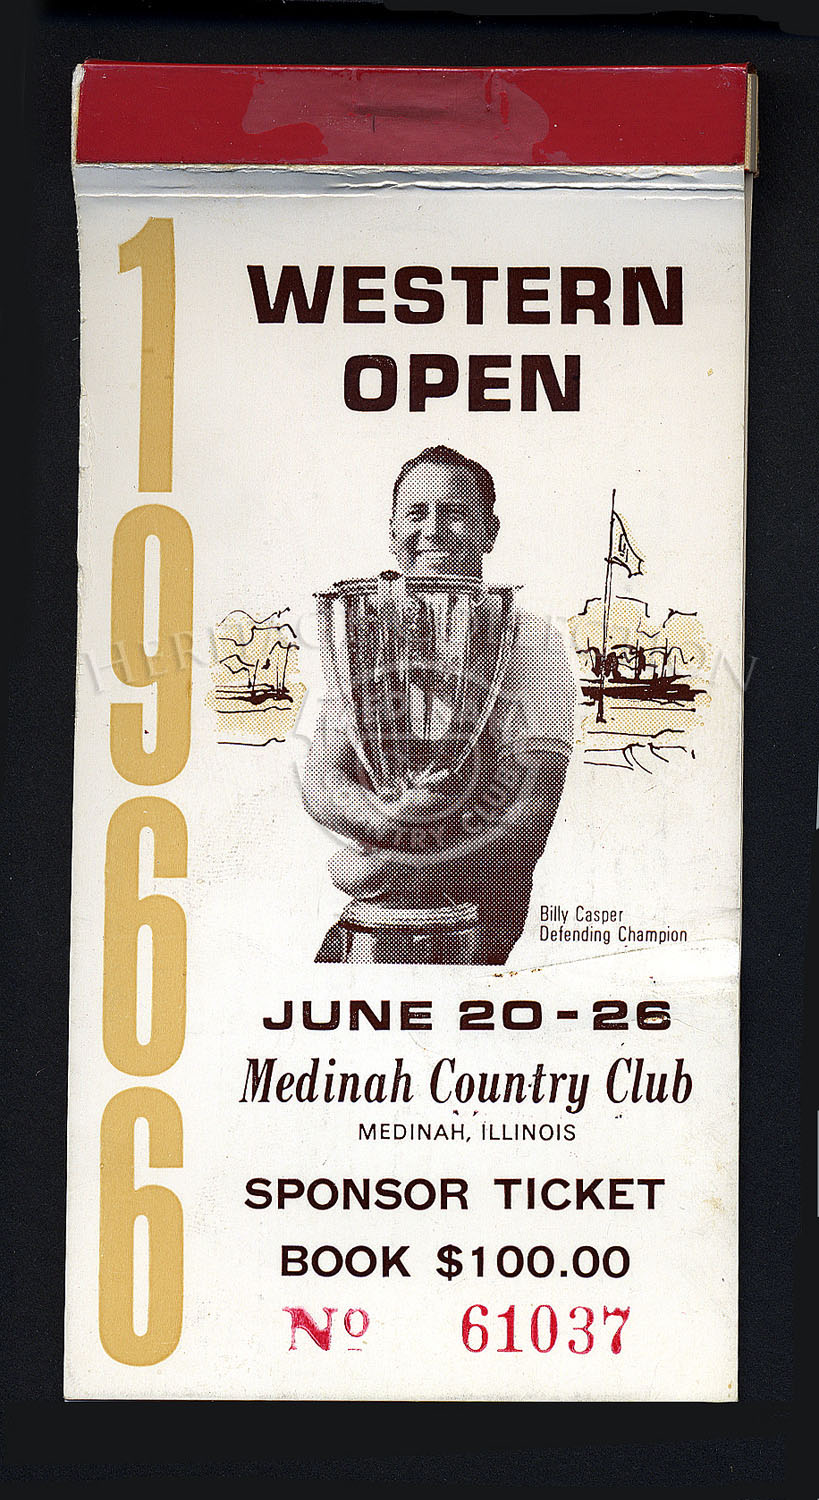 Billy Casper, defending champion, was pictured on the cover of the 63rd Western Open Sponsor Ticket Book. No tickets inside.